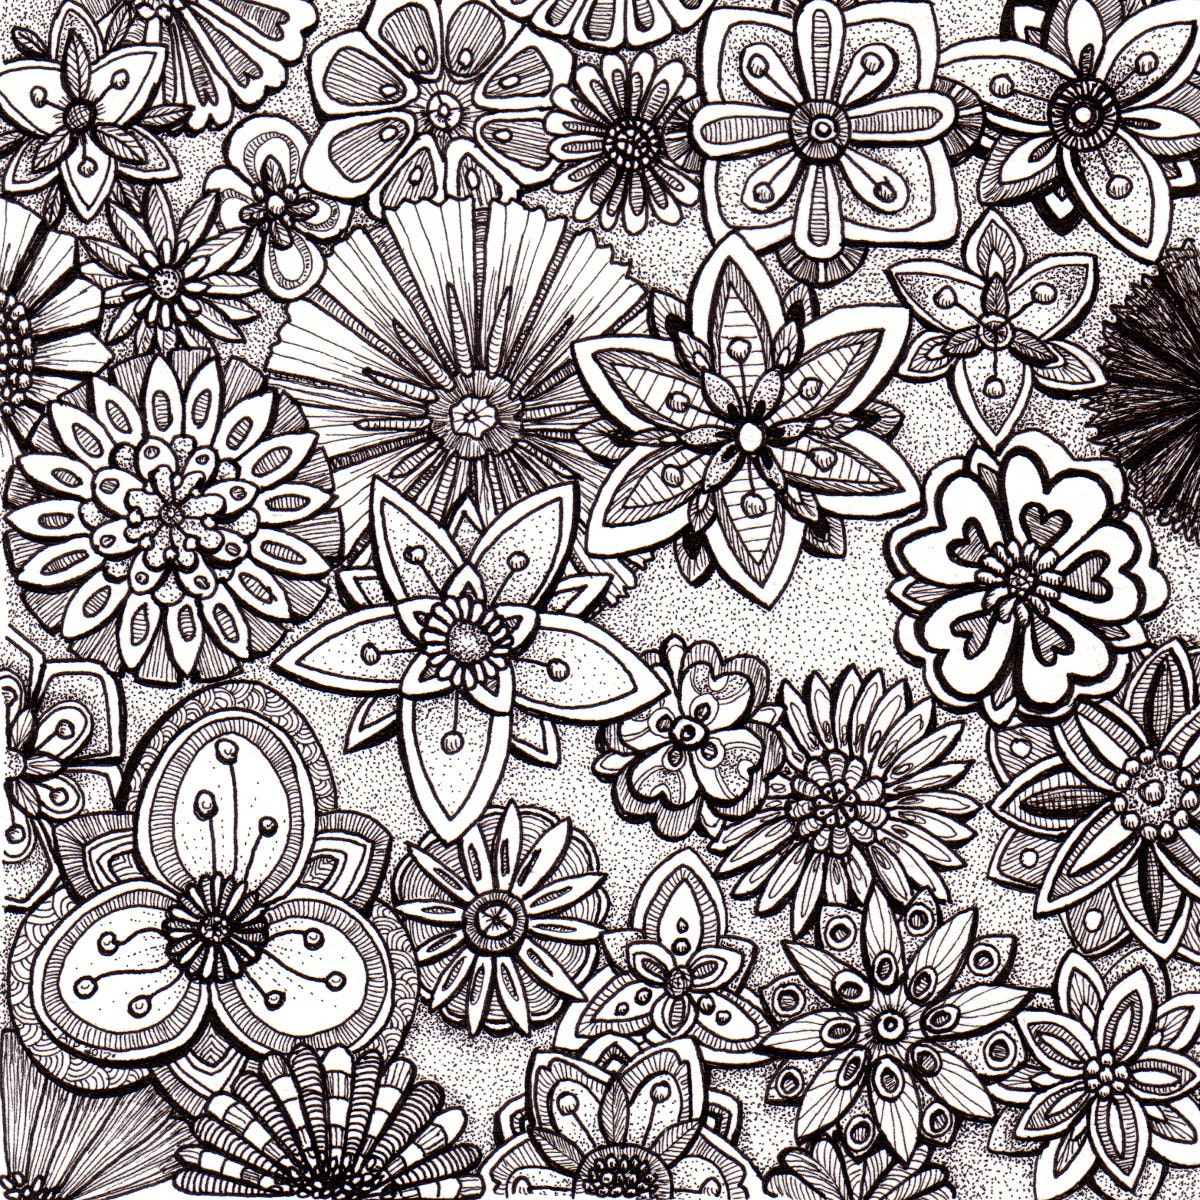 Abstract Line Drawing Flowers : Simple abstract flower drawings imgkid the